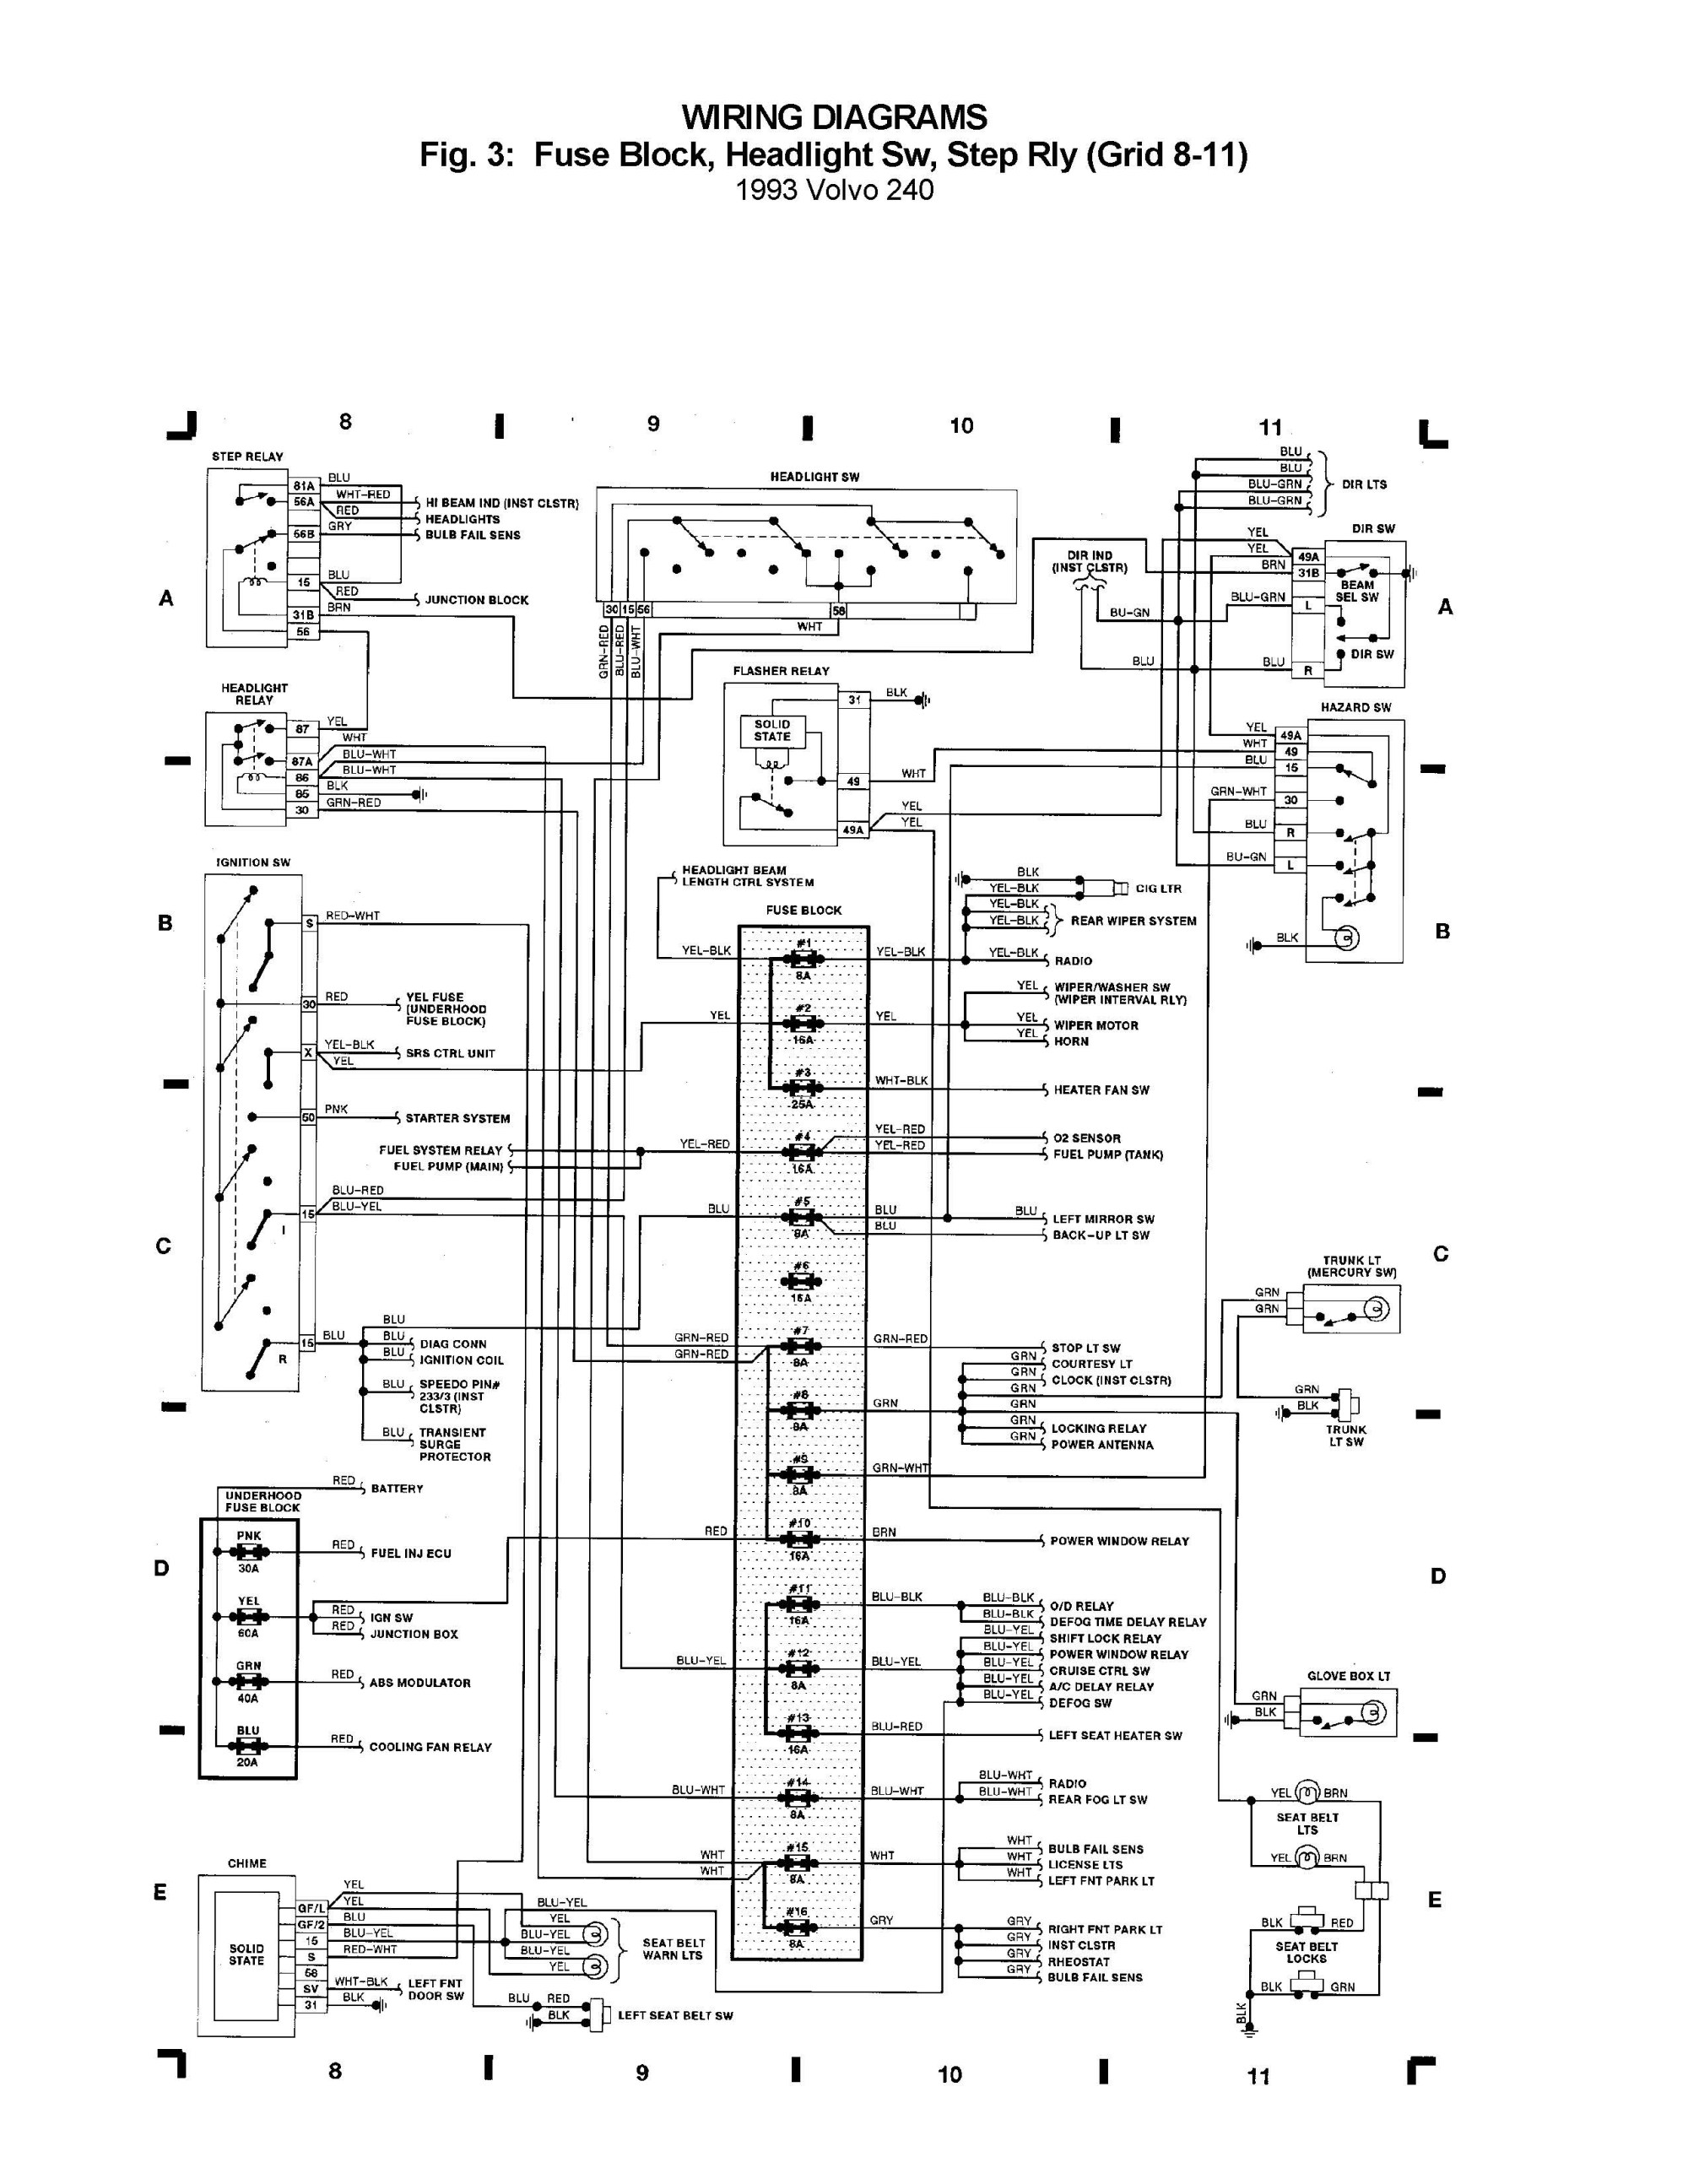 hight resolution of 1993 volvo 240 fuse diagram wiring diagram forward 1993 volvo 240 radio wiring diagram 1993 volvo 240 fuse diagram